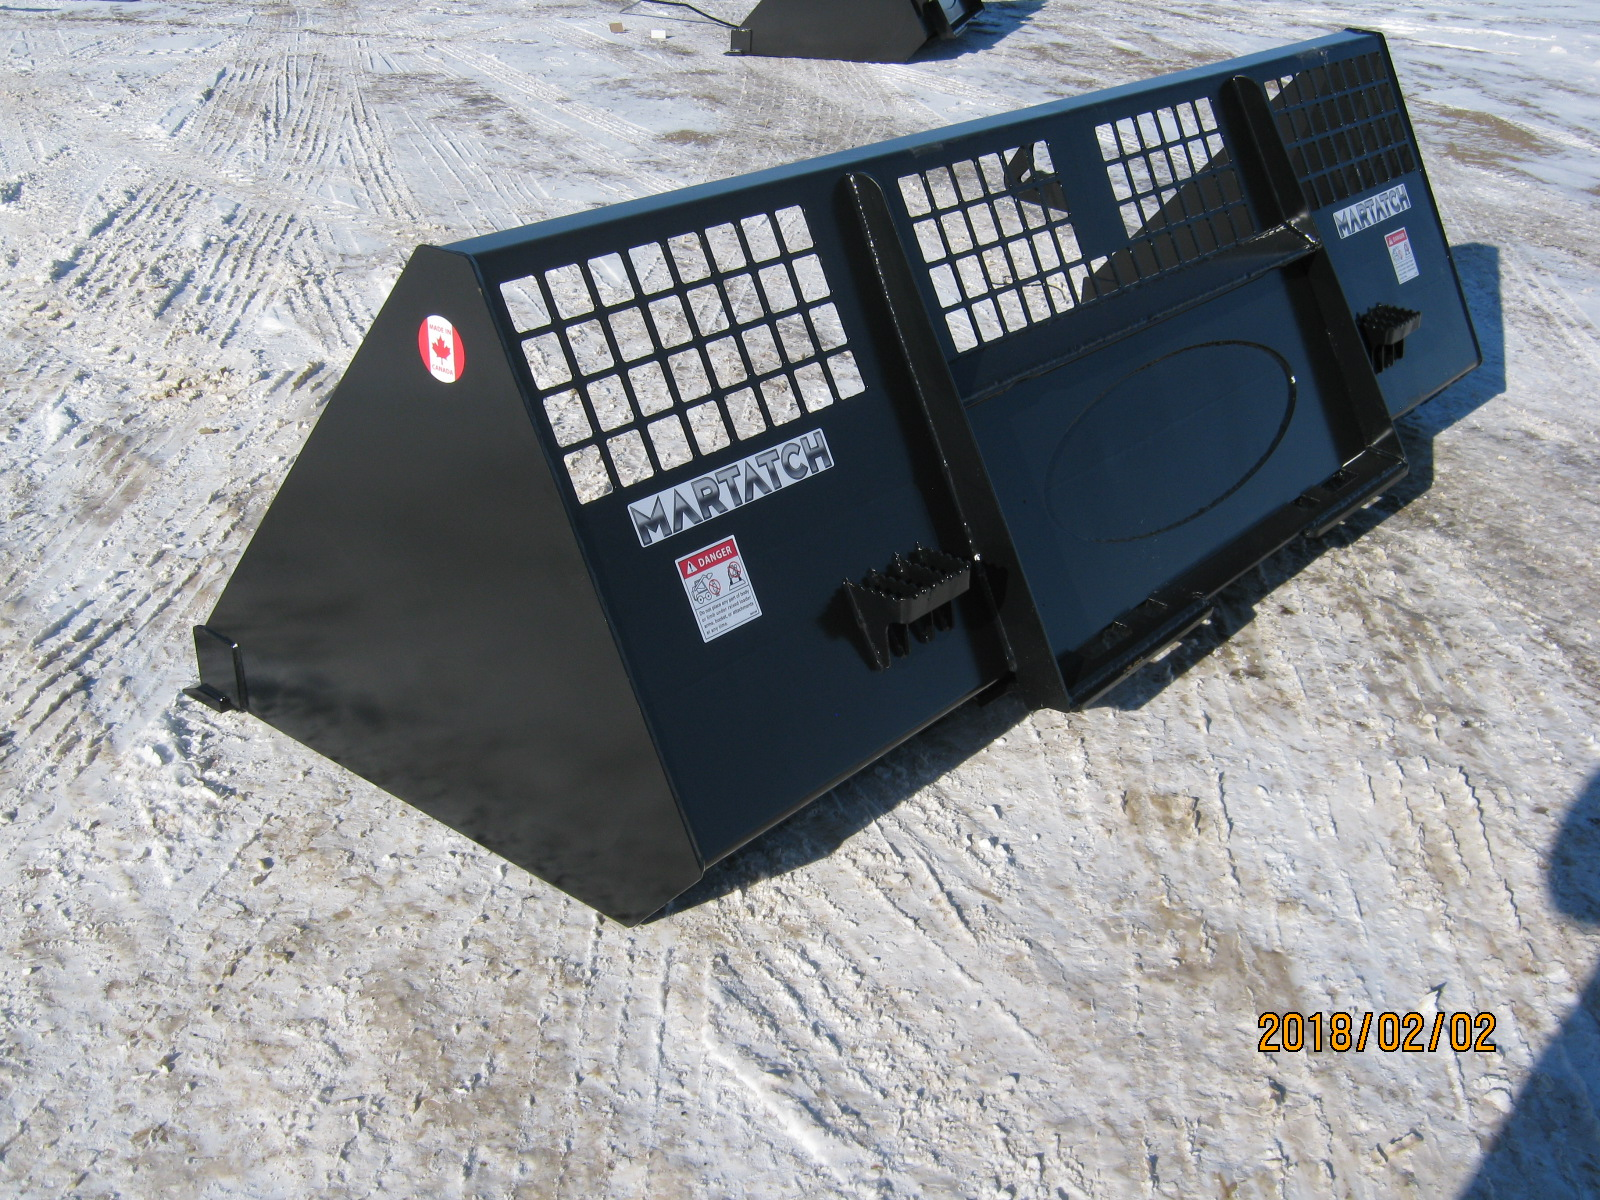 Skid Steer Snow Bucket - MBR96HV-GB